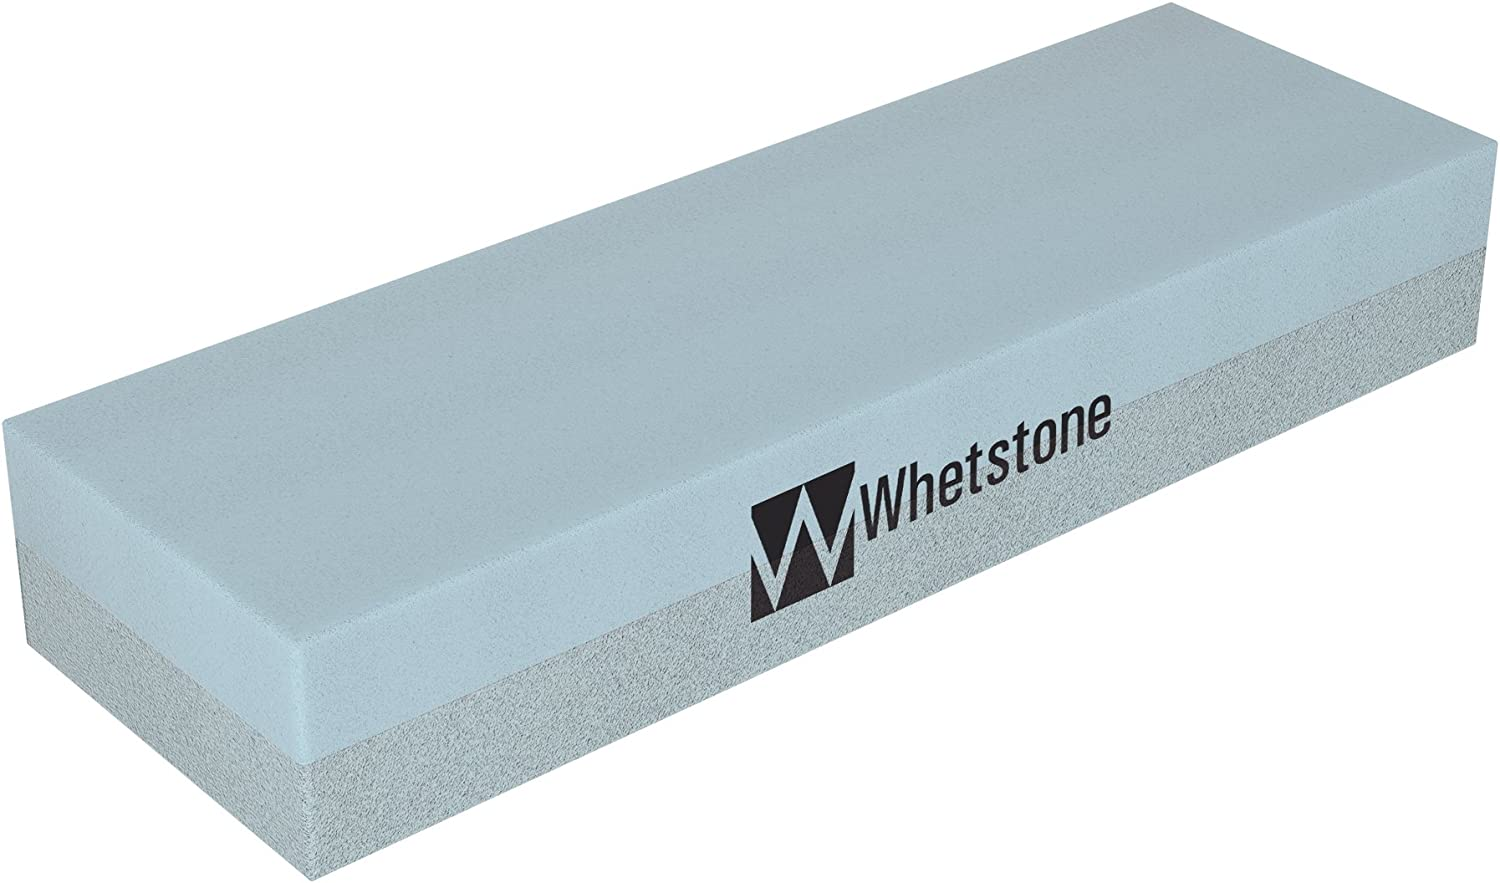 Whetstone Cutlery 20-10960 Knife Sharpening Stone-Dual Sided 400/1000 Grit Water Stone-Sharpener and Polishing Tool for Kitchen, Hunting and Pocket Knives or Blades by Whetstone: Sports & Outdoors